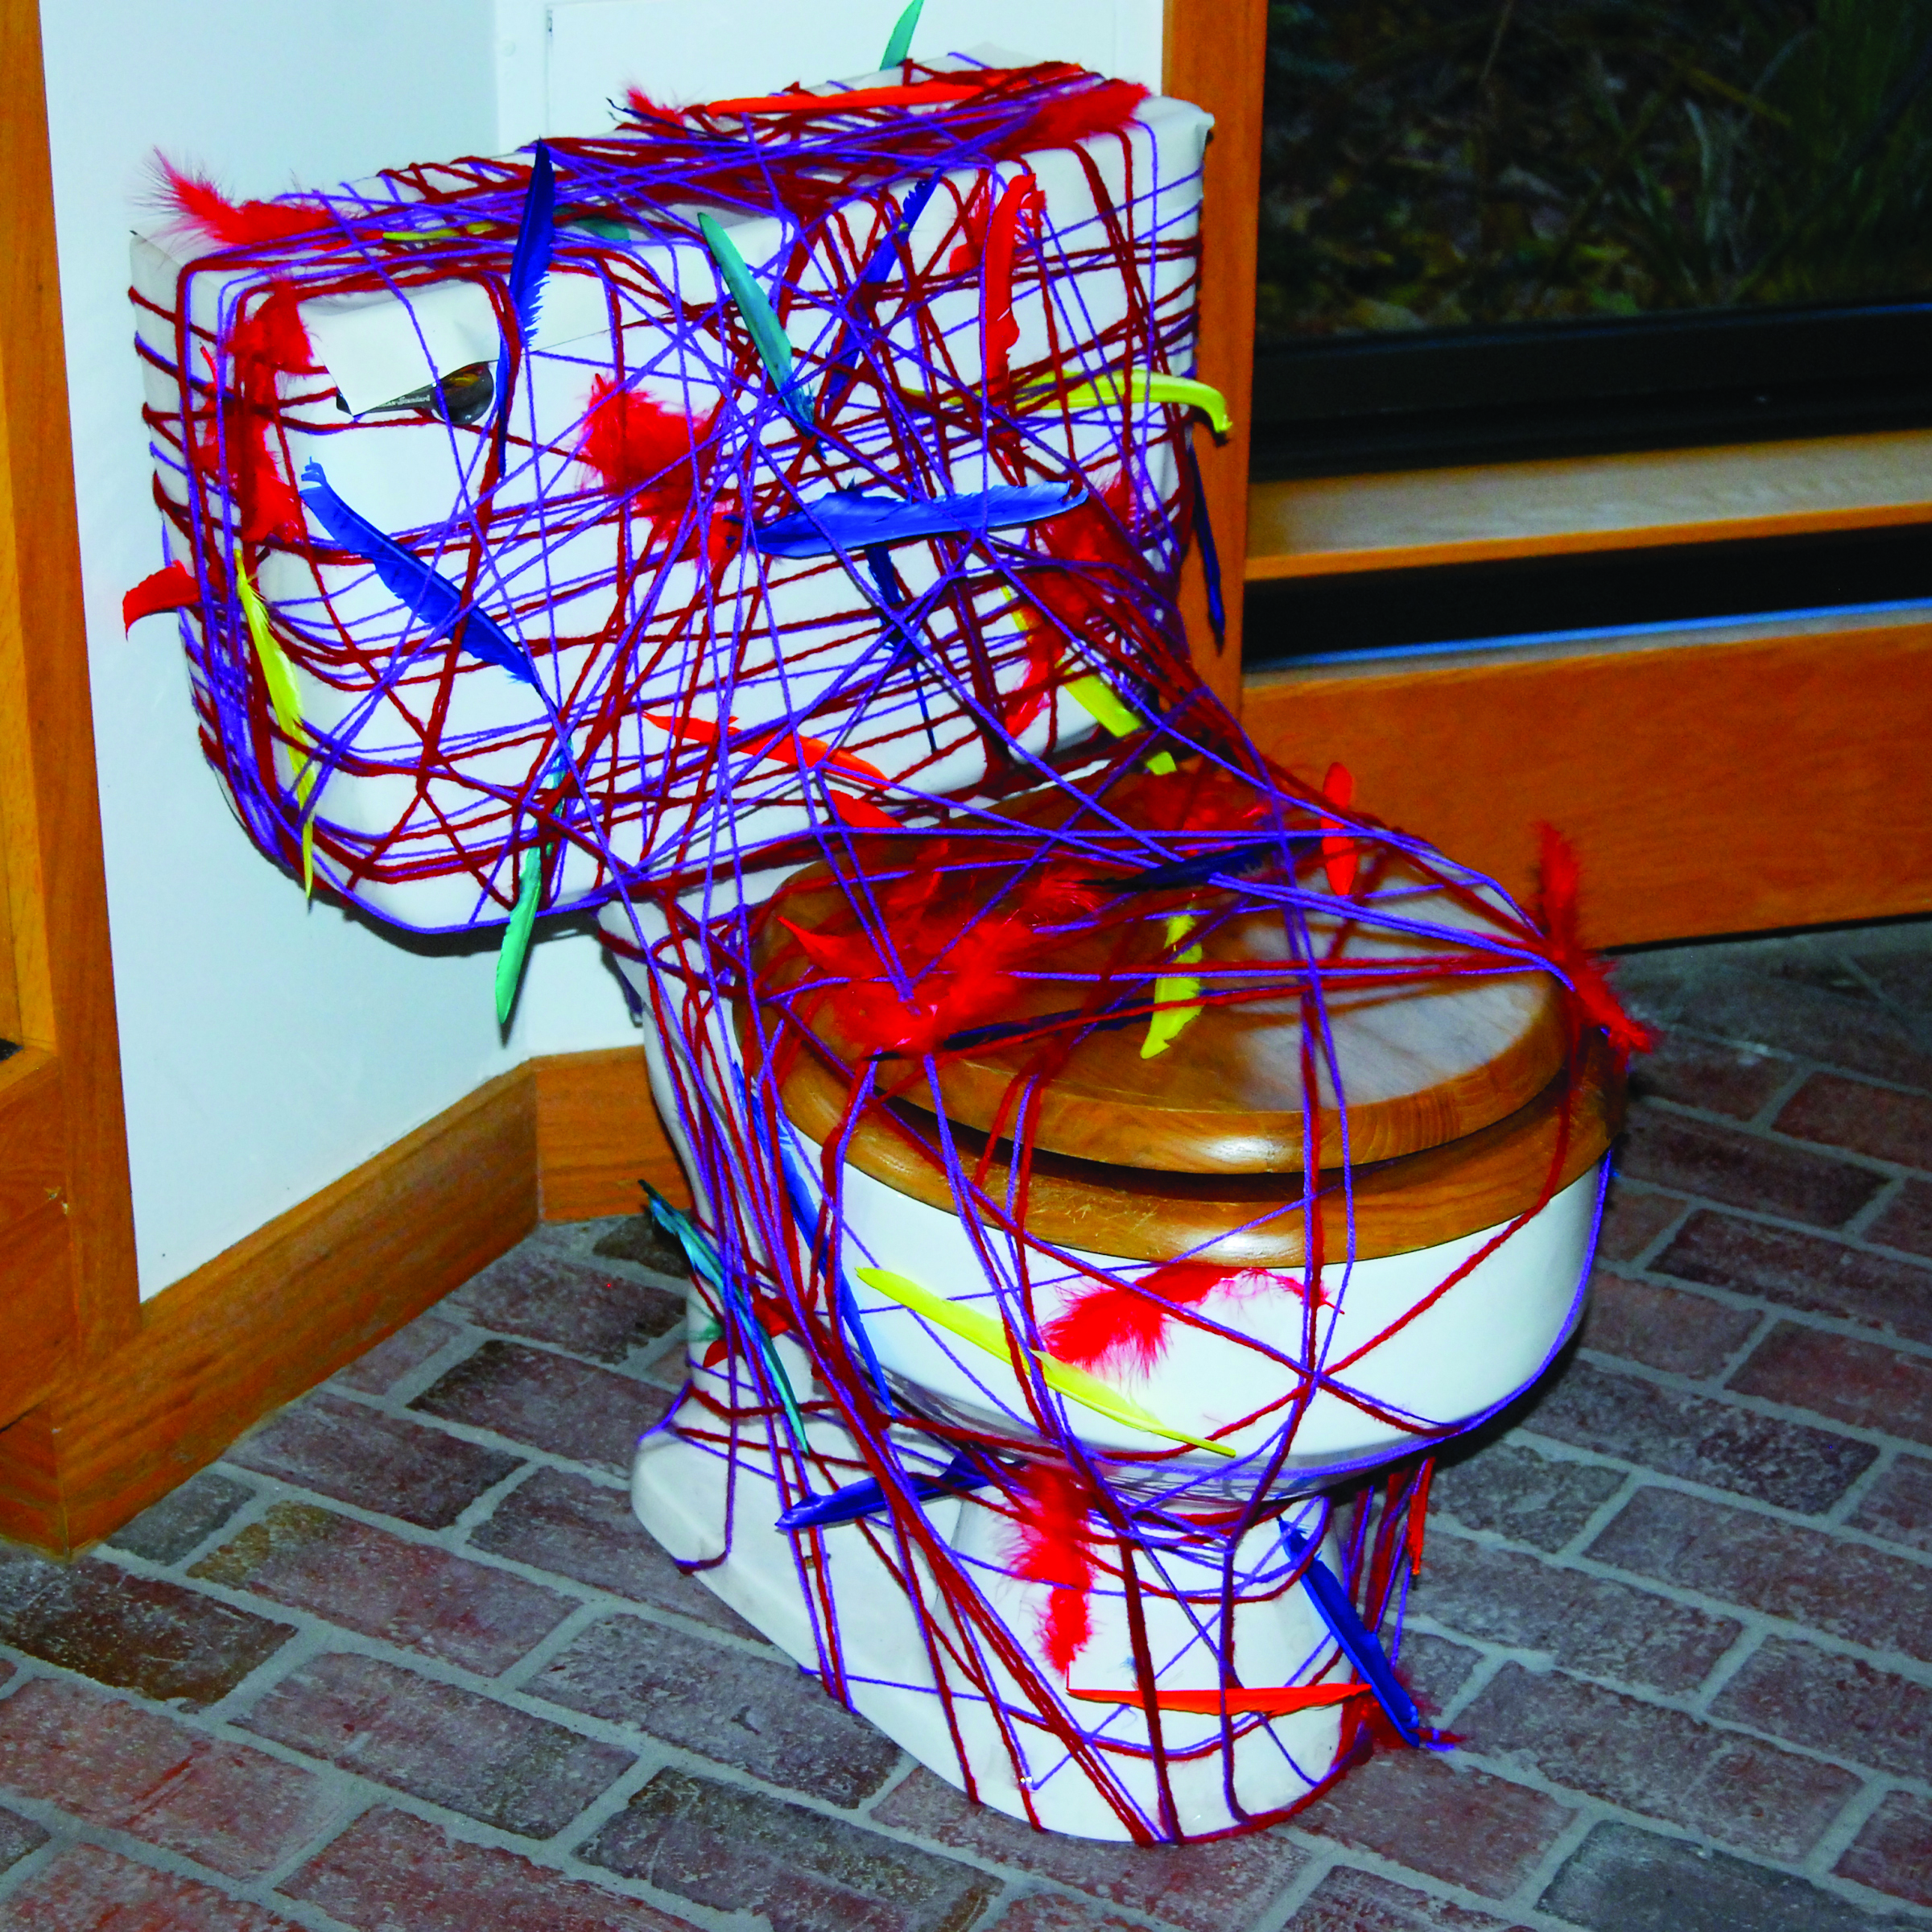 A toilet covered in brightly colored yarn and feathers